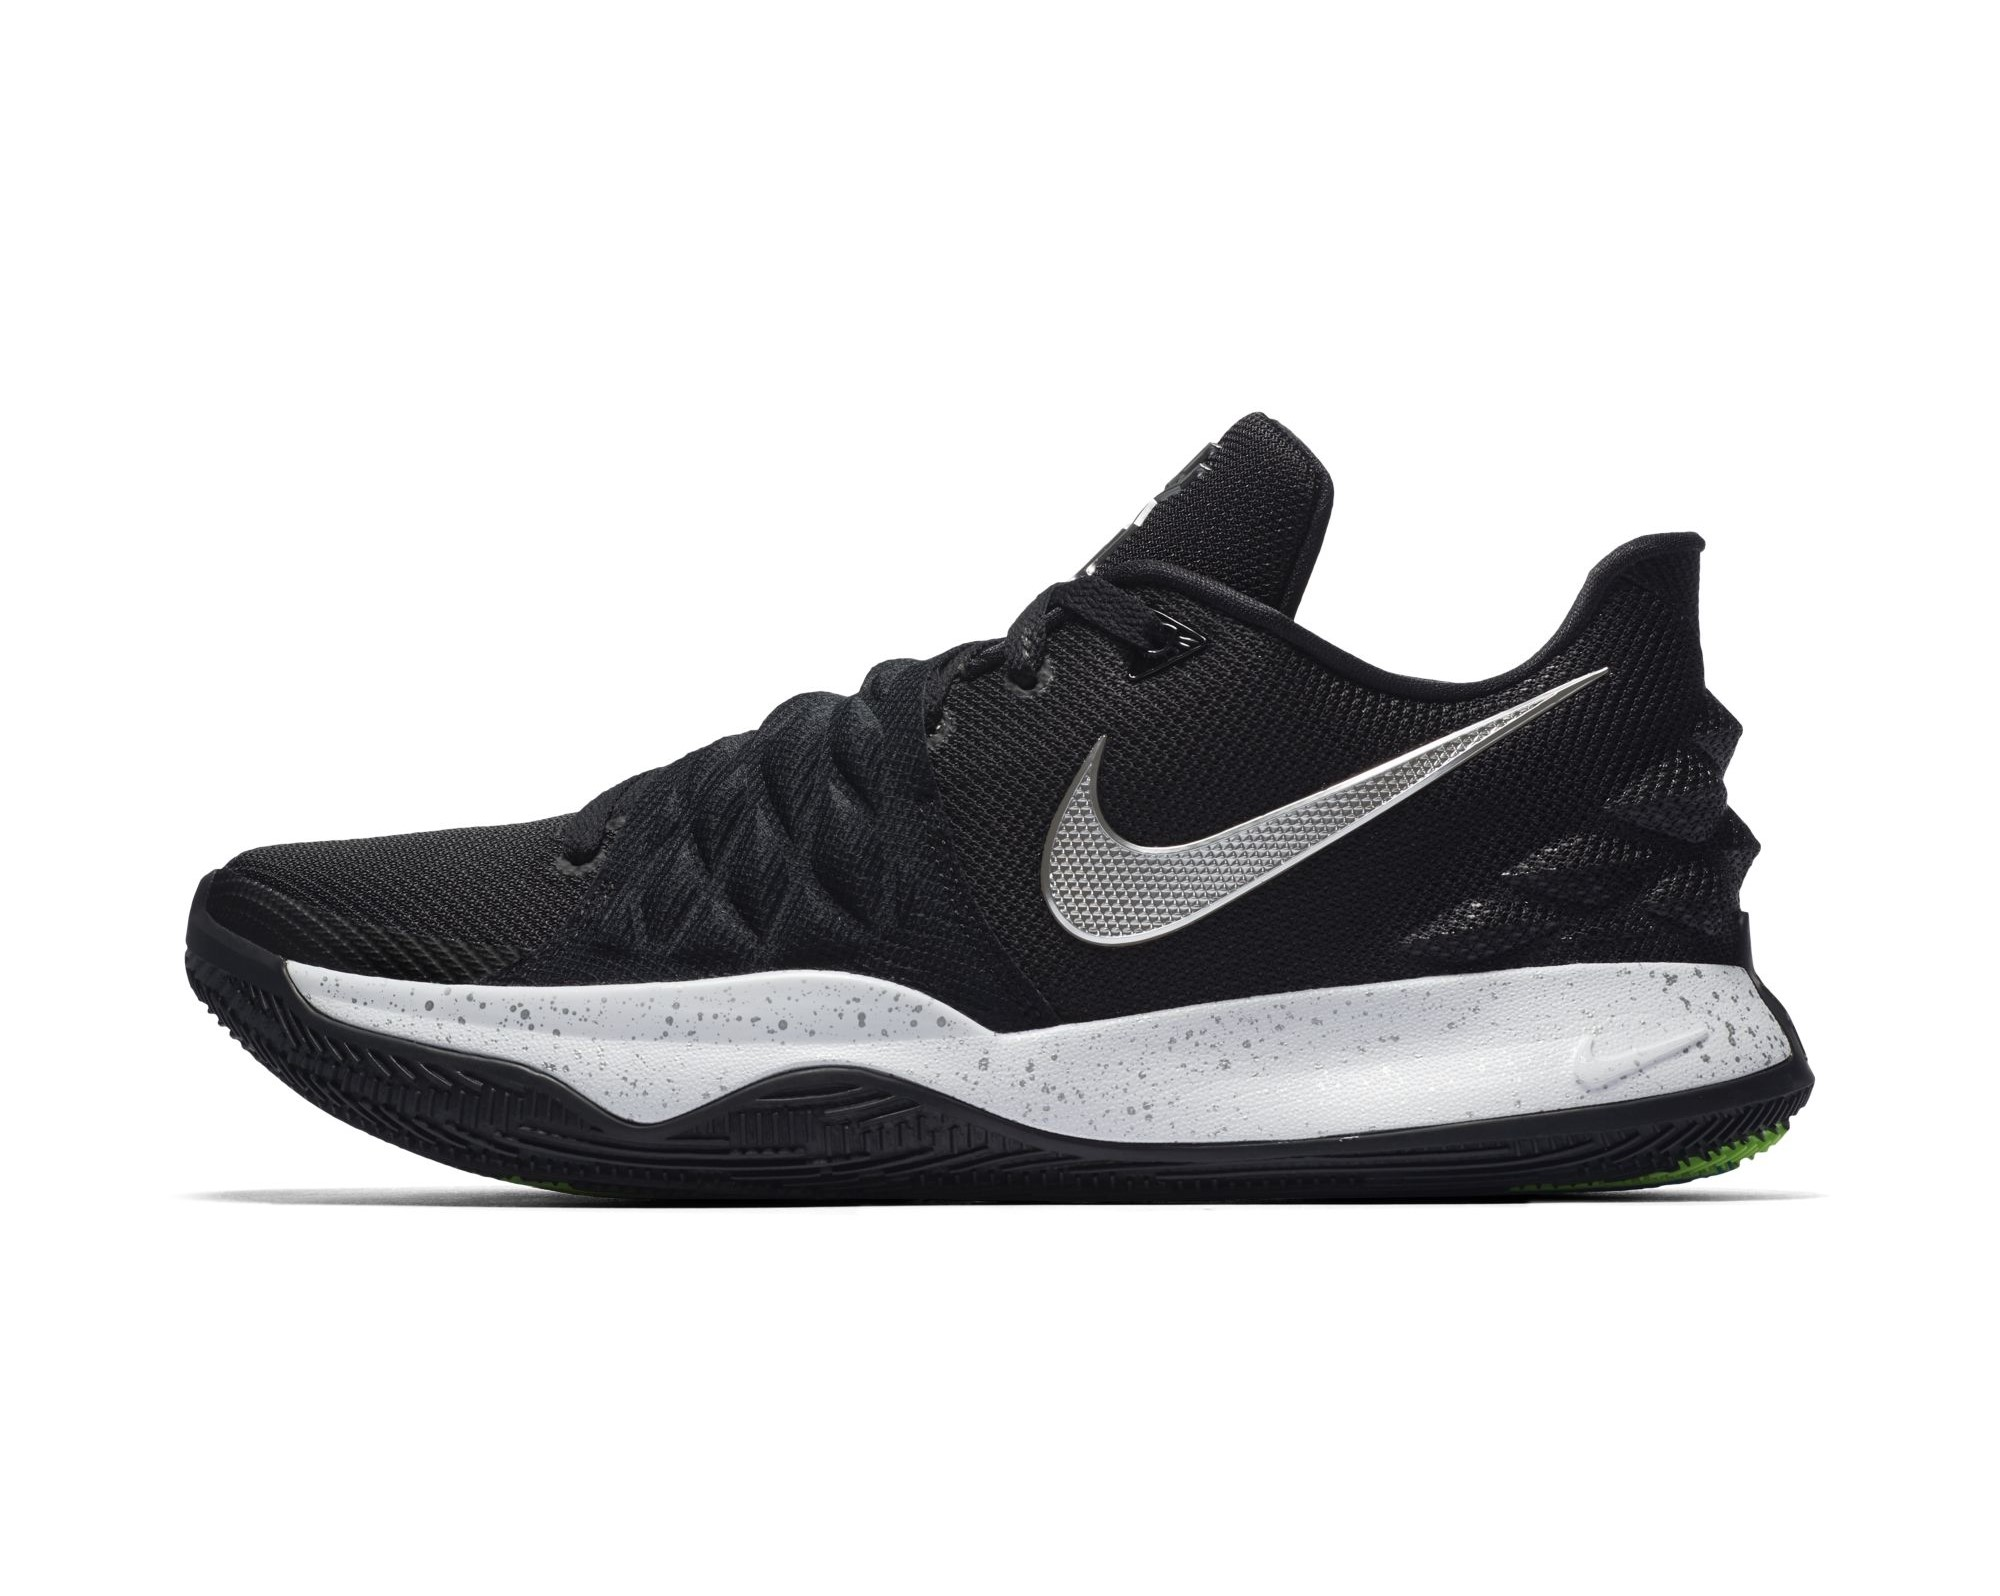 wholesale dealer e50a6 6cd83 The Nike Kyrie 4 Low is Clean in Black and White - WearTesters